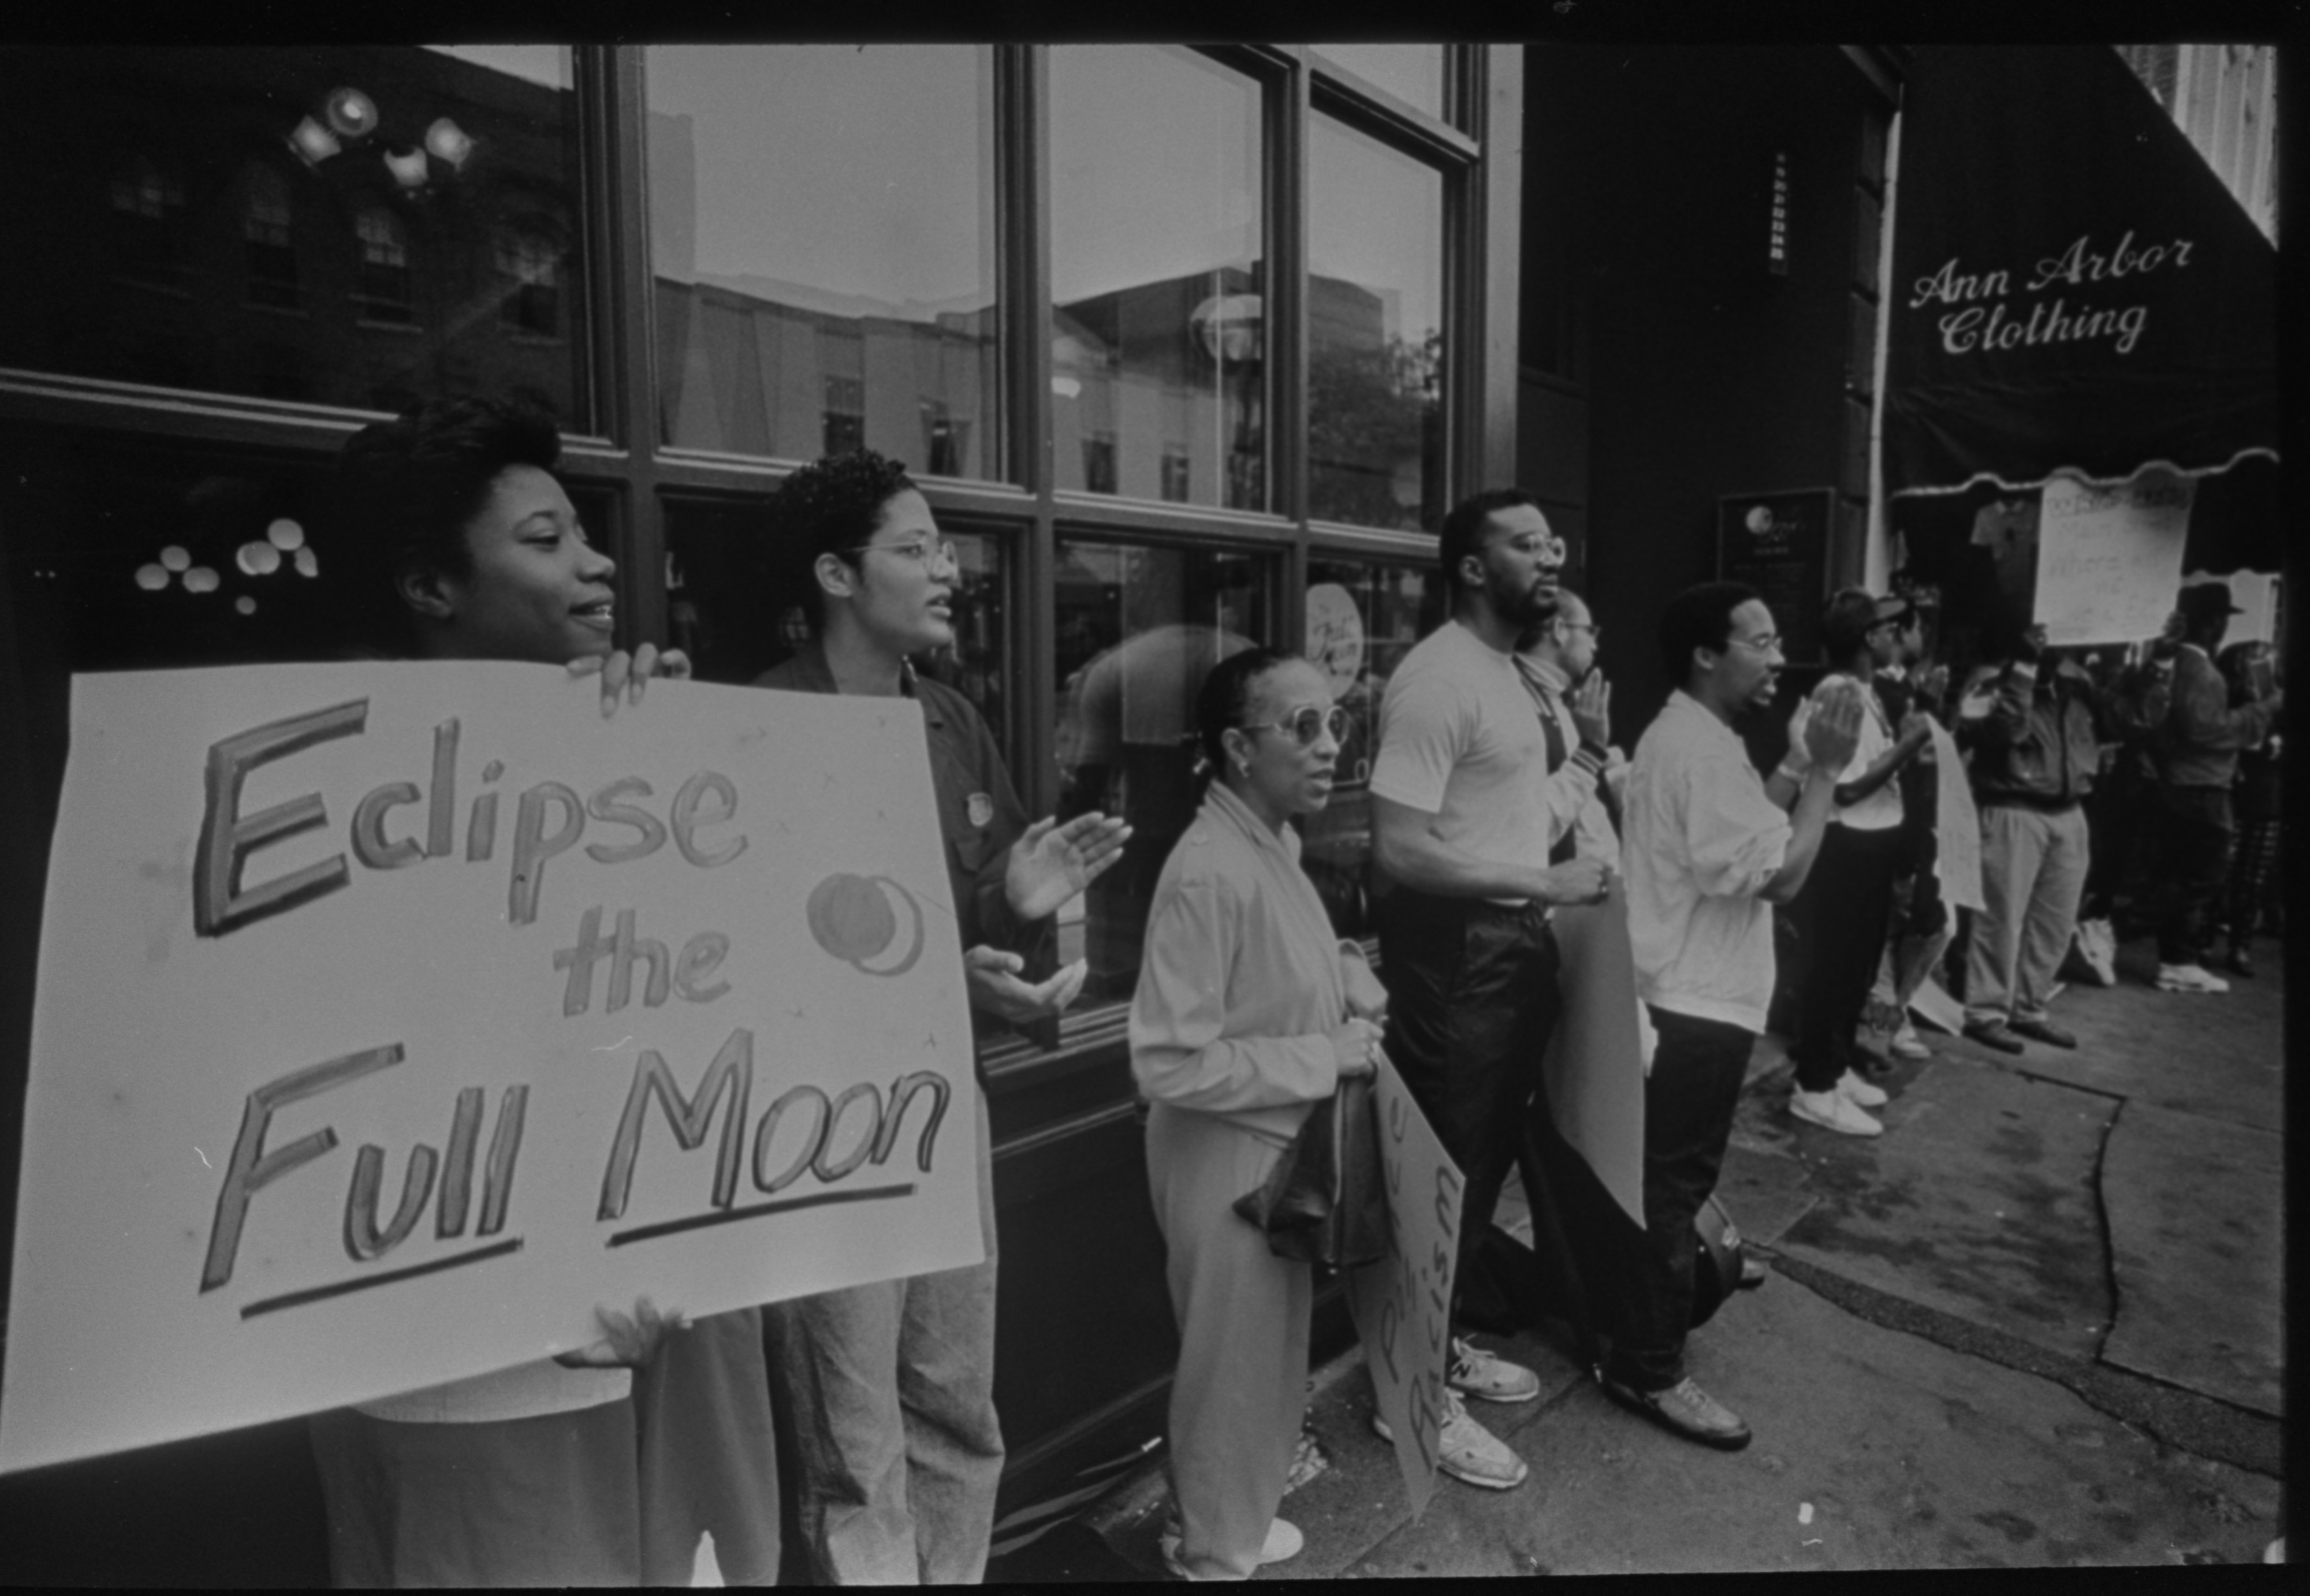 Protesters Outside Full Moon Restaurant Call For Boycott, August 1990 image